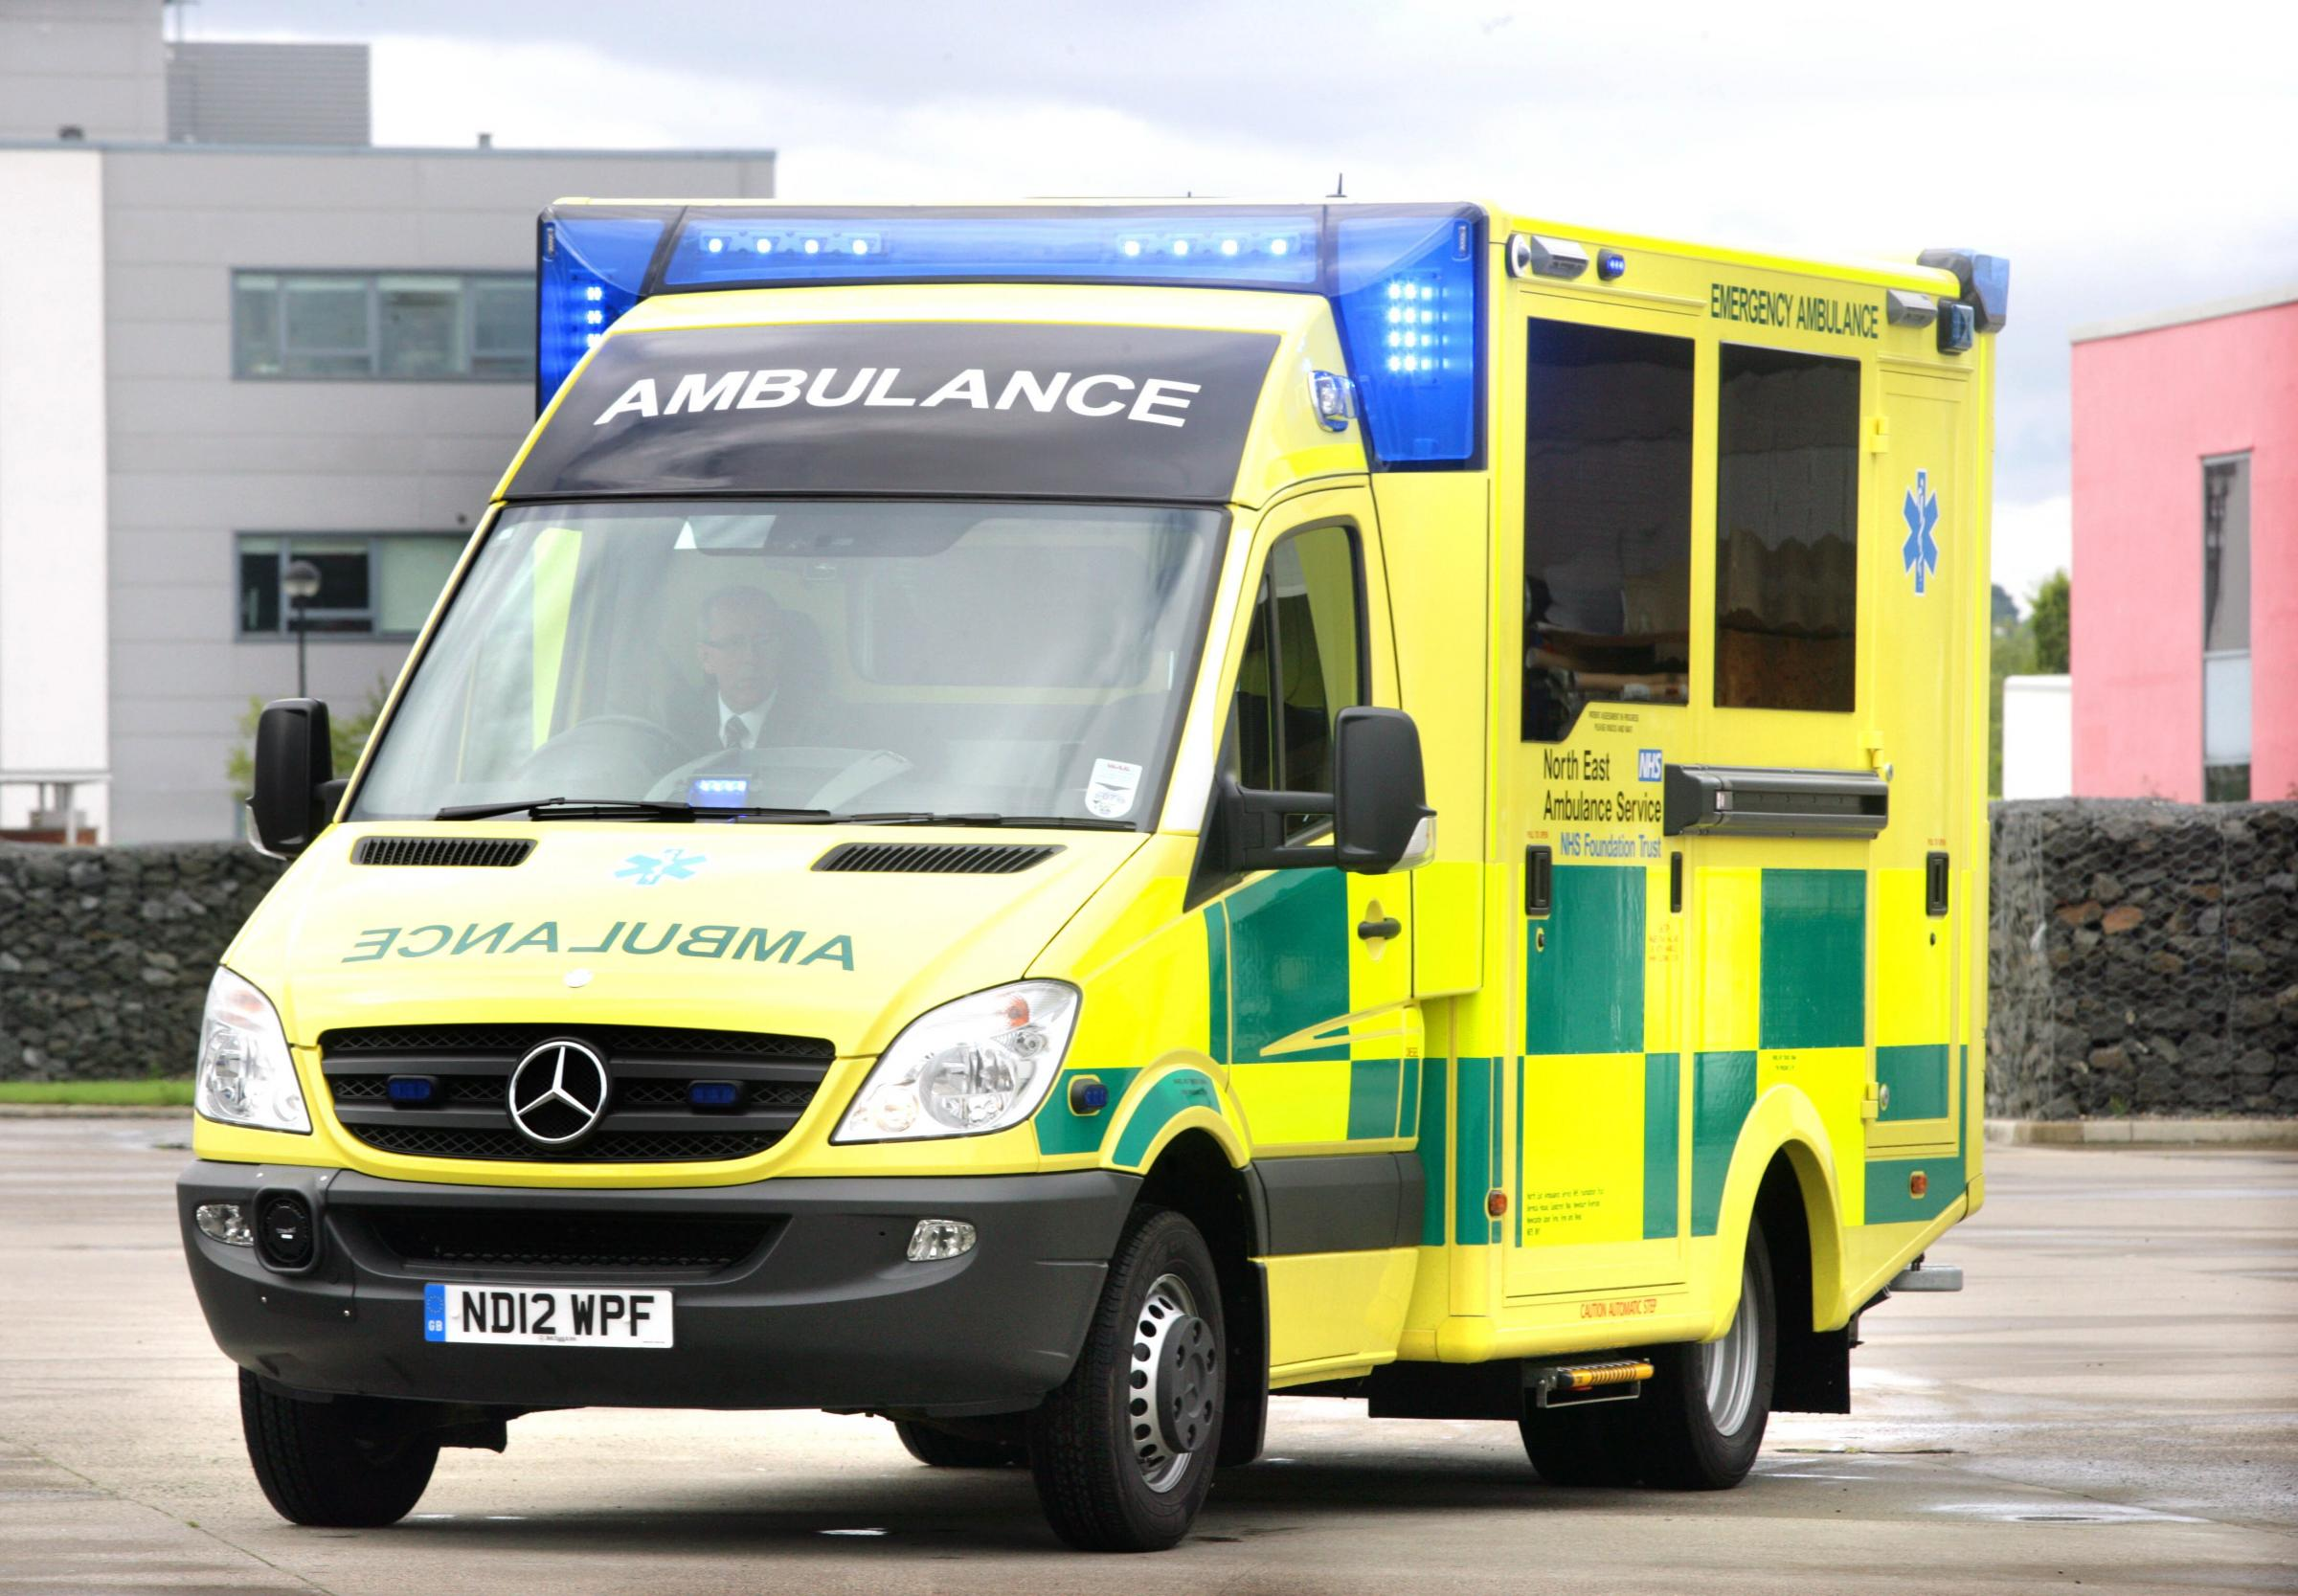 Paramedic degree launched at university